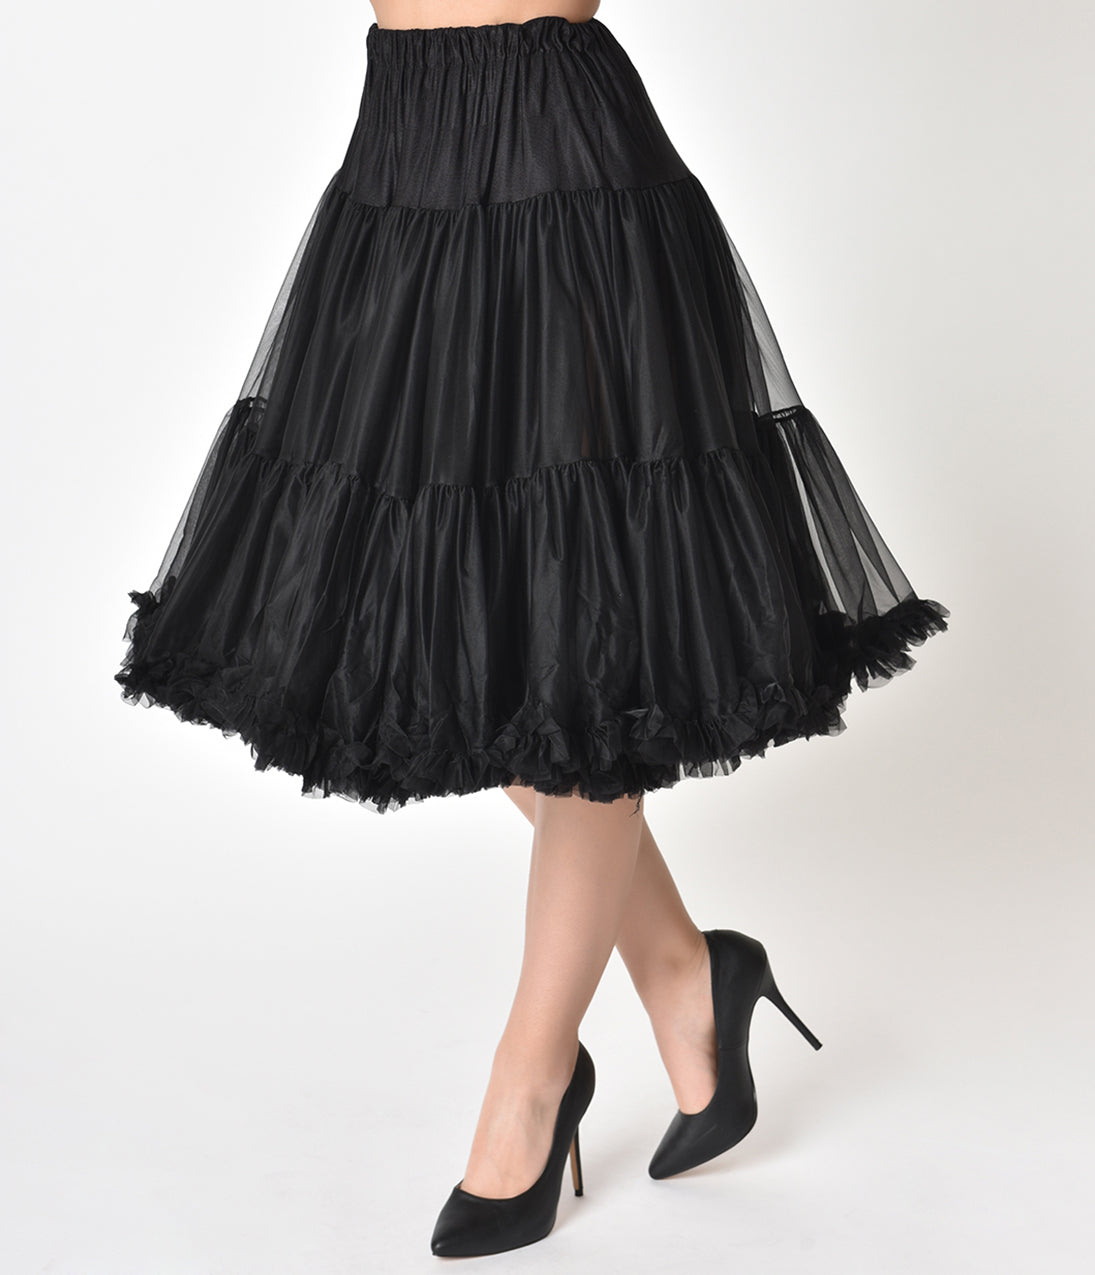 1950s Petticoat History Unique Vintage 1950S Style Black Tea Length Ruffled Chiffon Petticoat Crinoline $68.00 AT vintagedancer.com